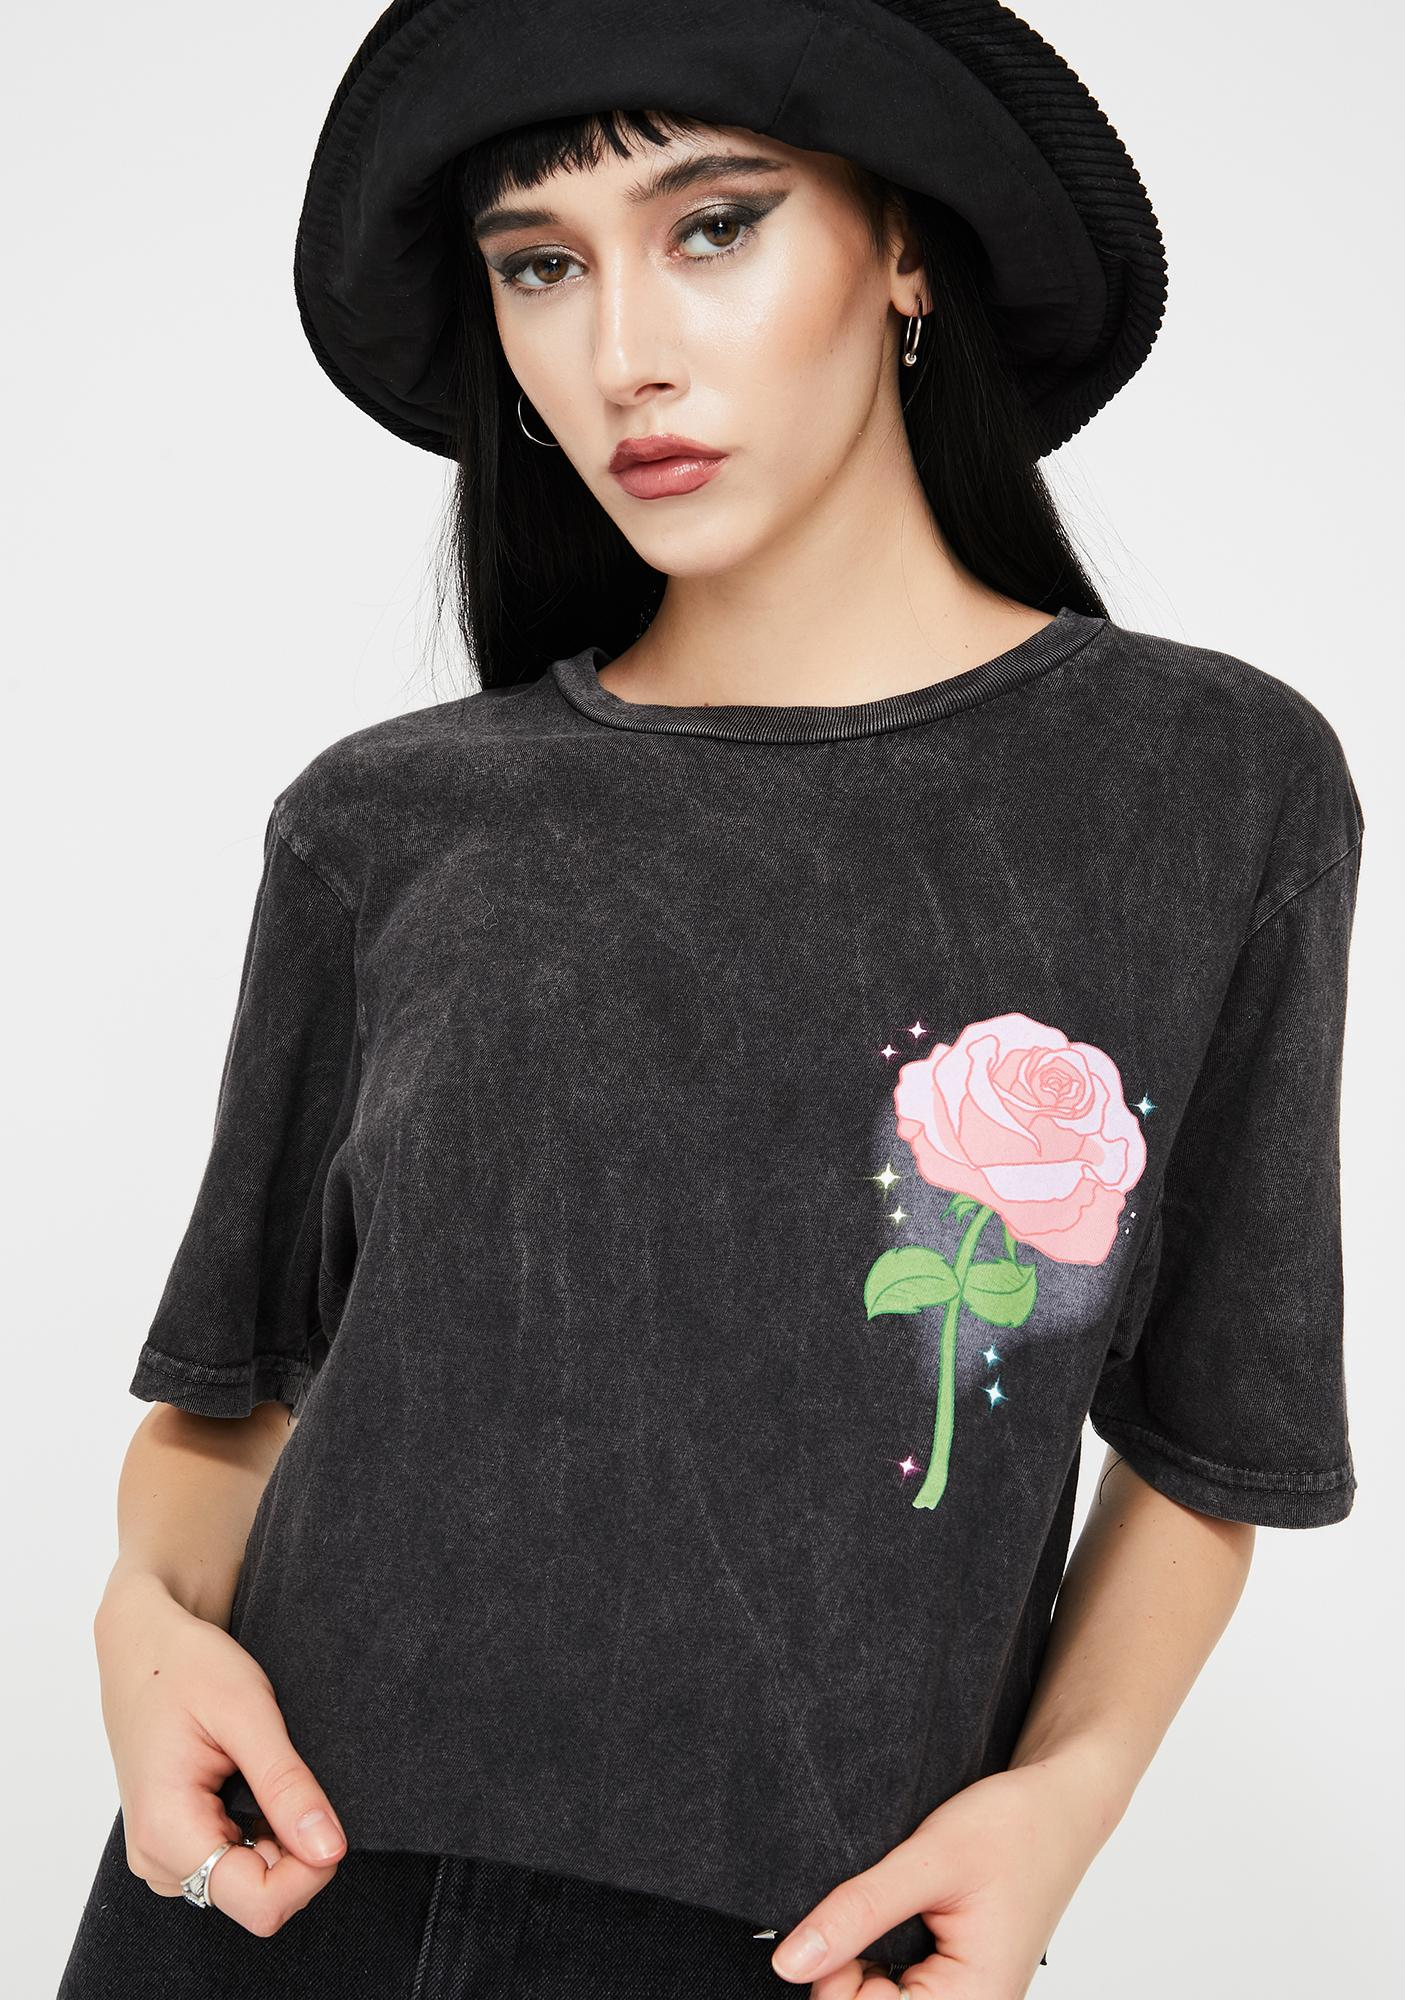 By Samii Ryan None For You Graphic Tee